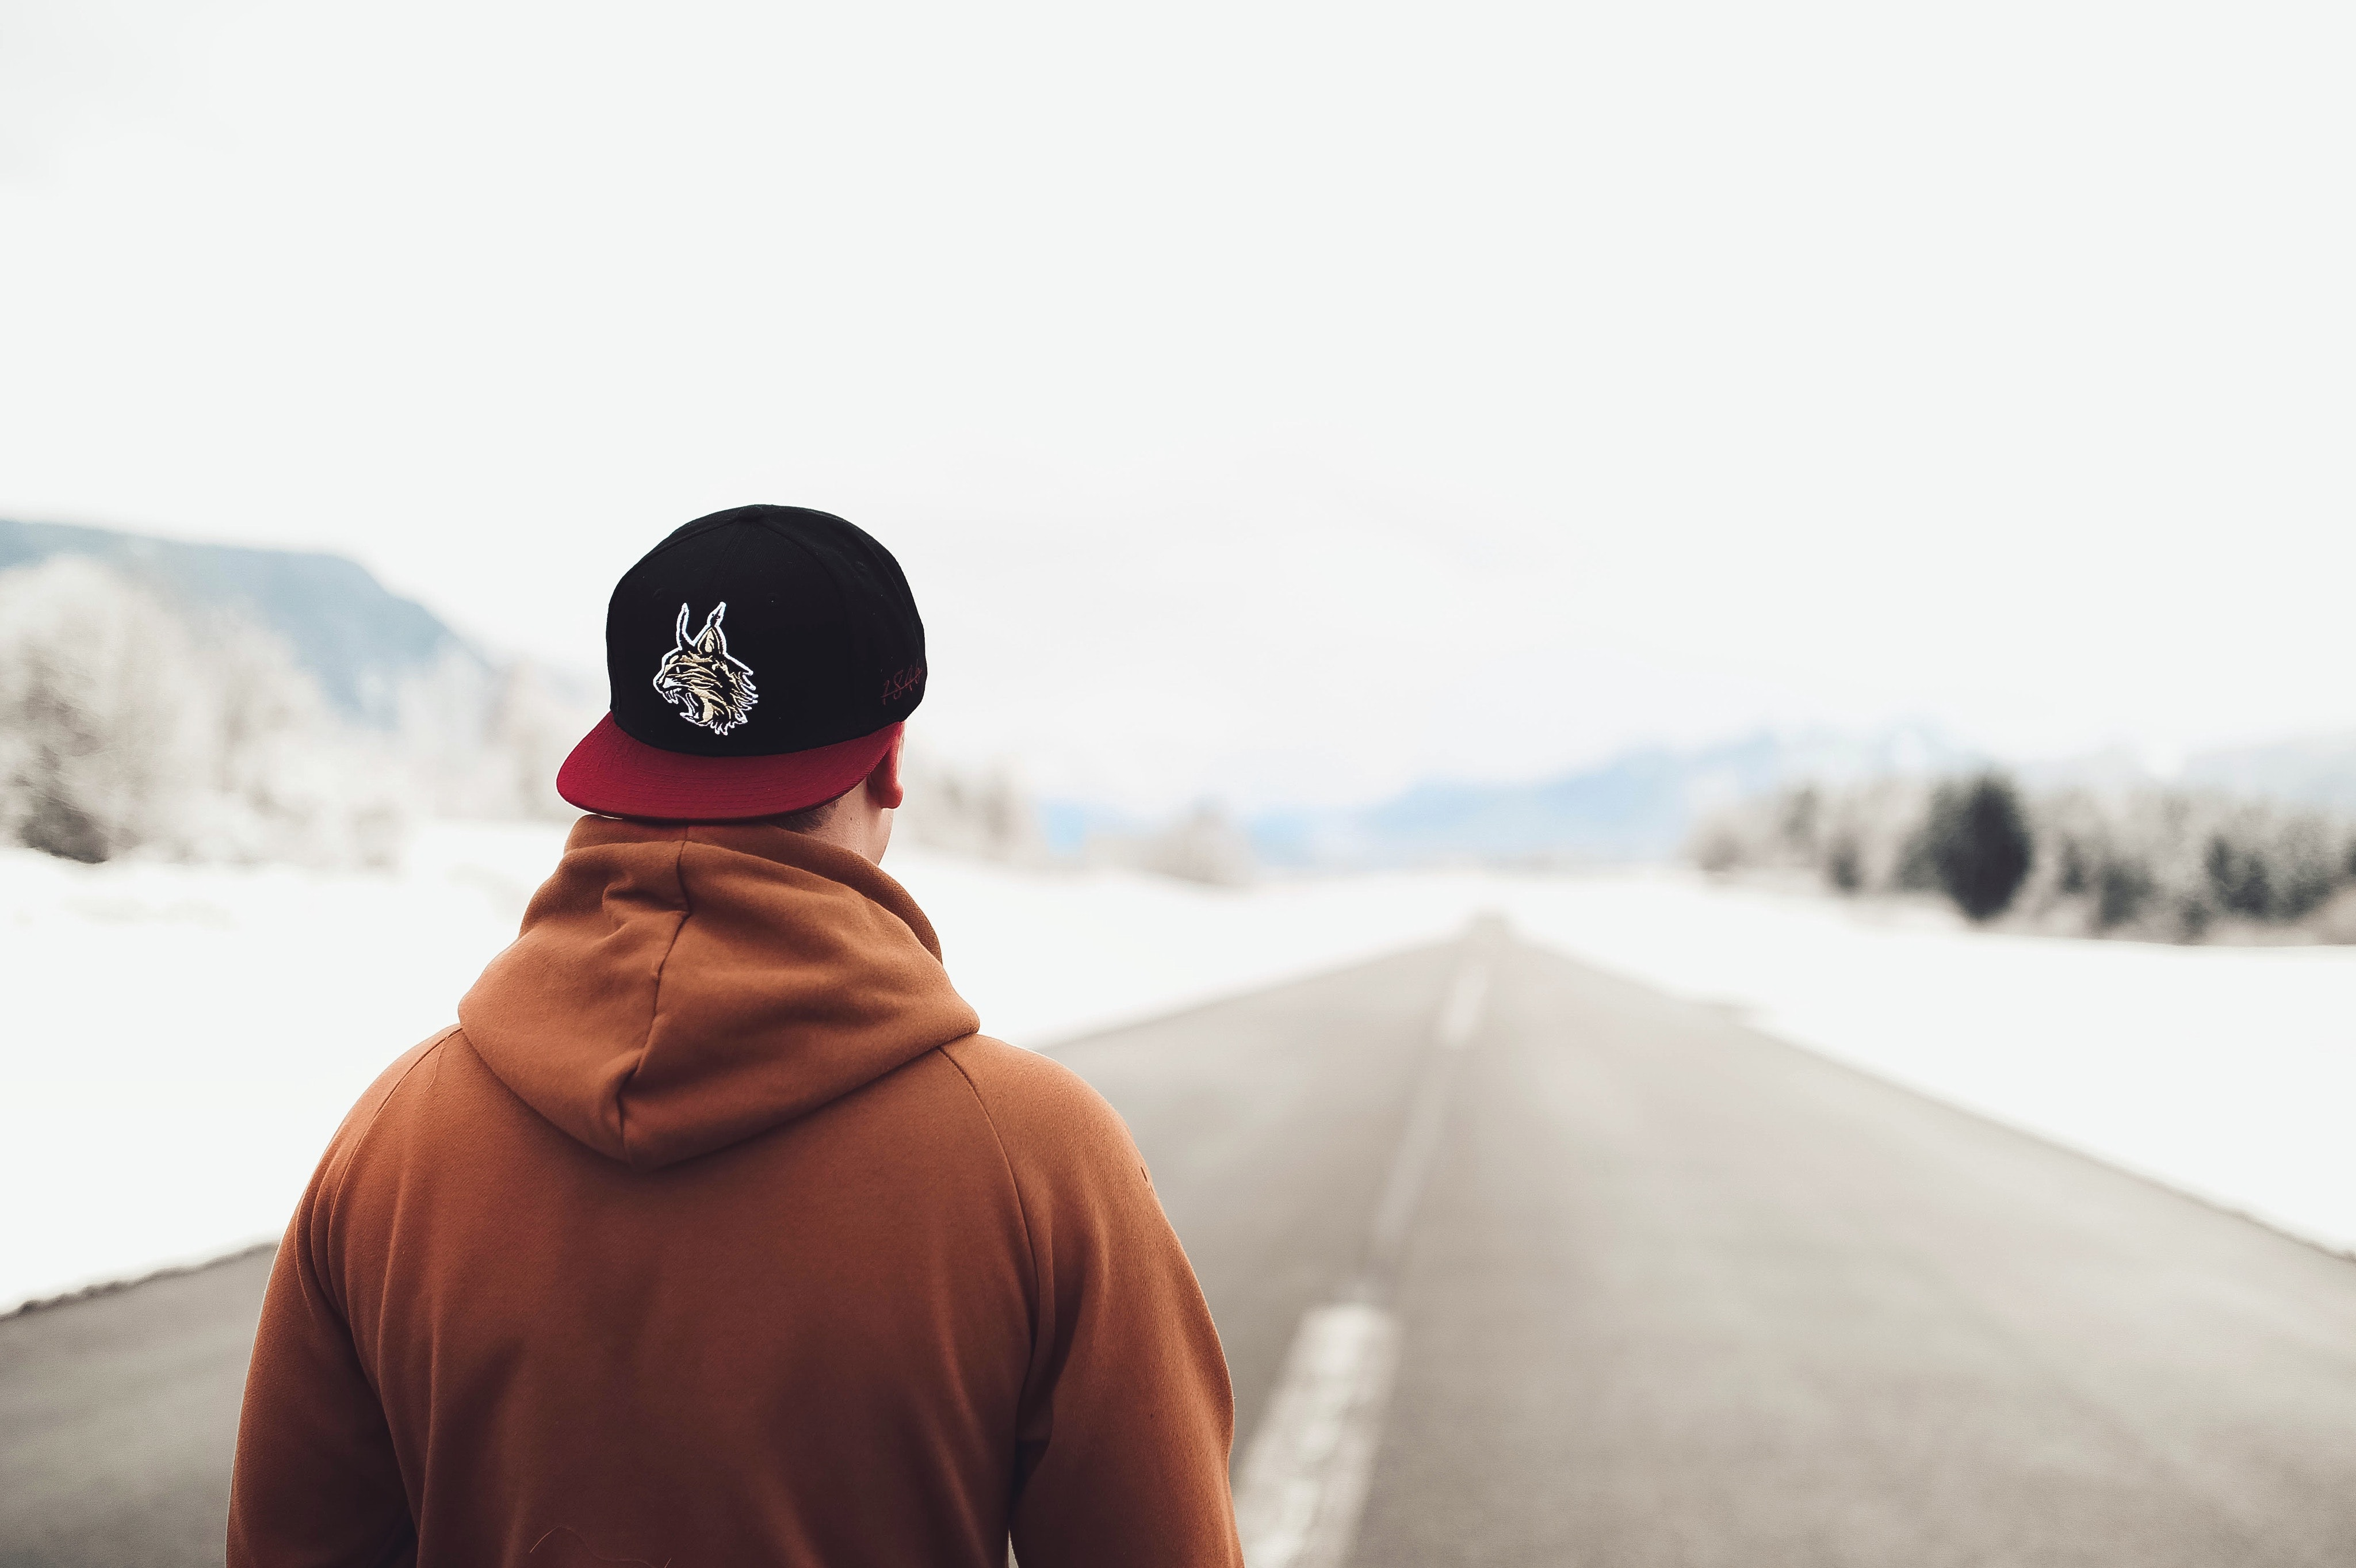 Person in brown hoodie and fitted cap walking on road photo